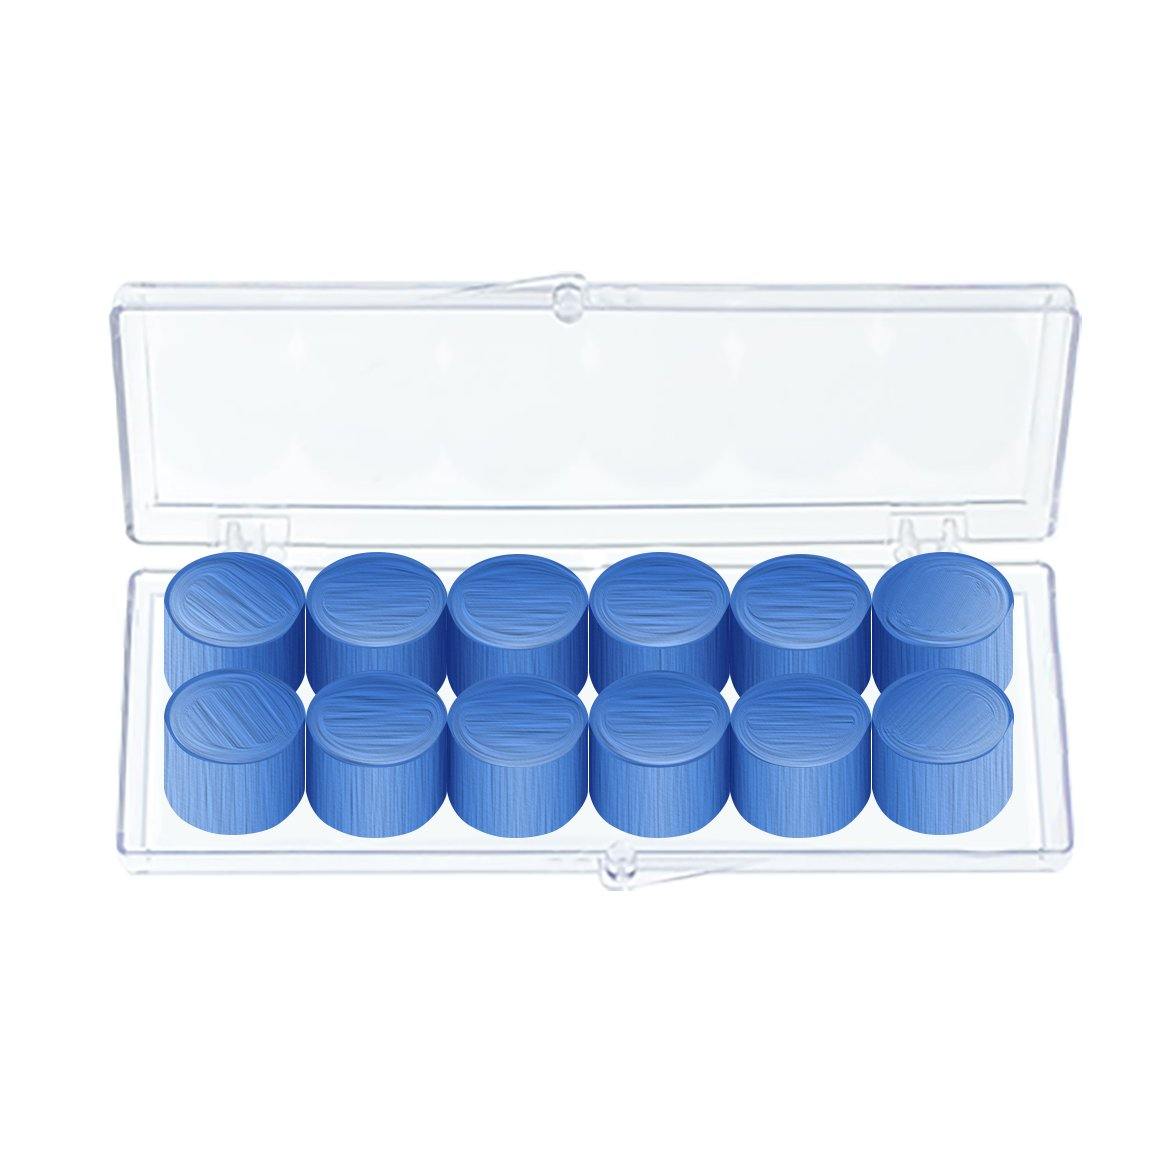 Mighty Plugs World's Finest Ear Plug---(6-Pair) Personal Pack,Blue,One Size Fits All